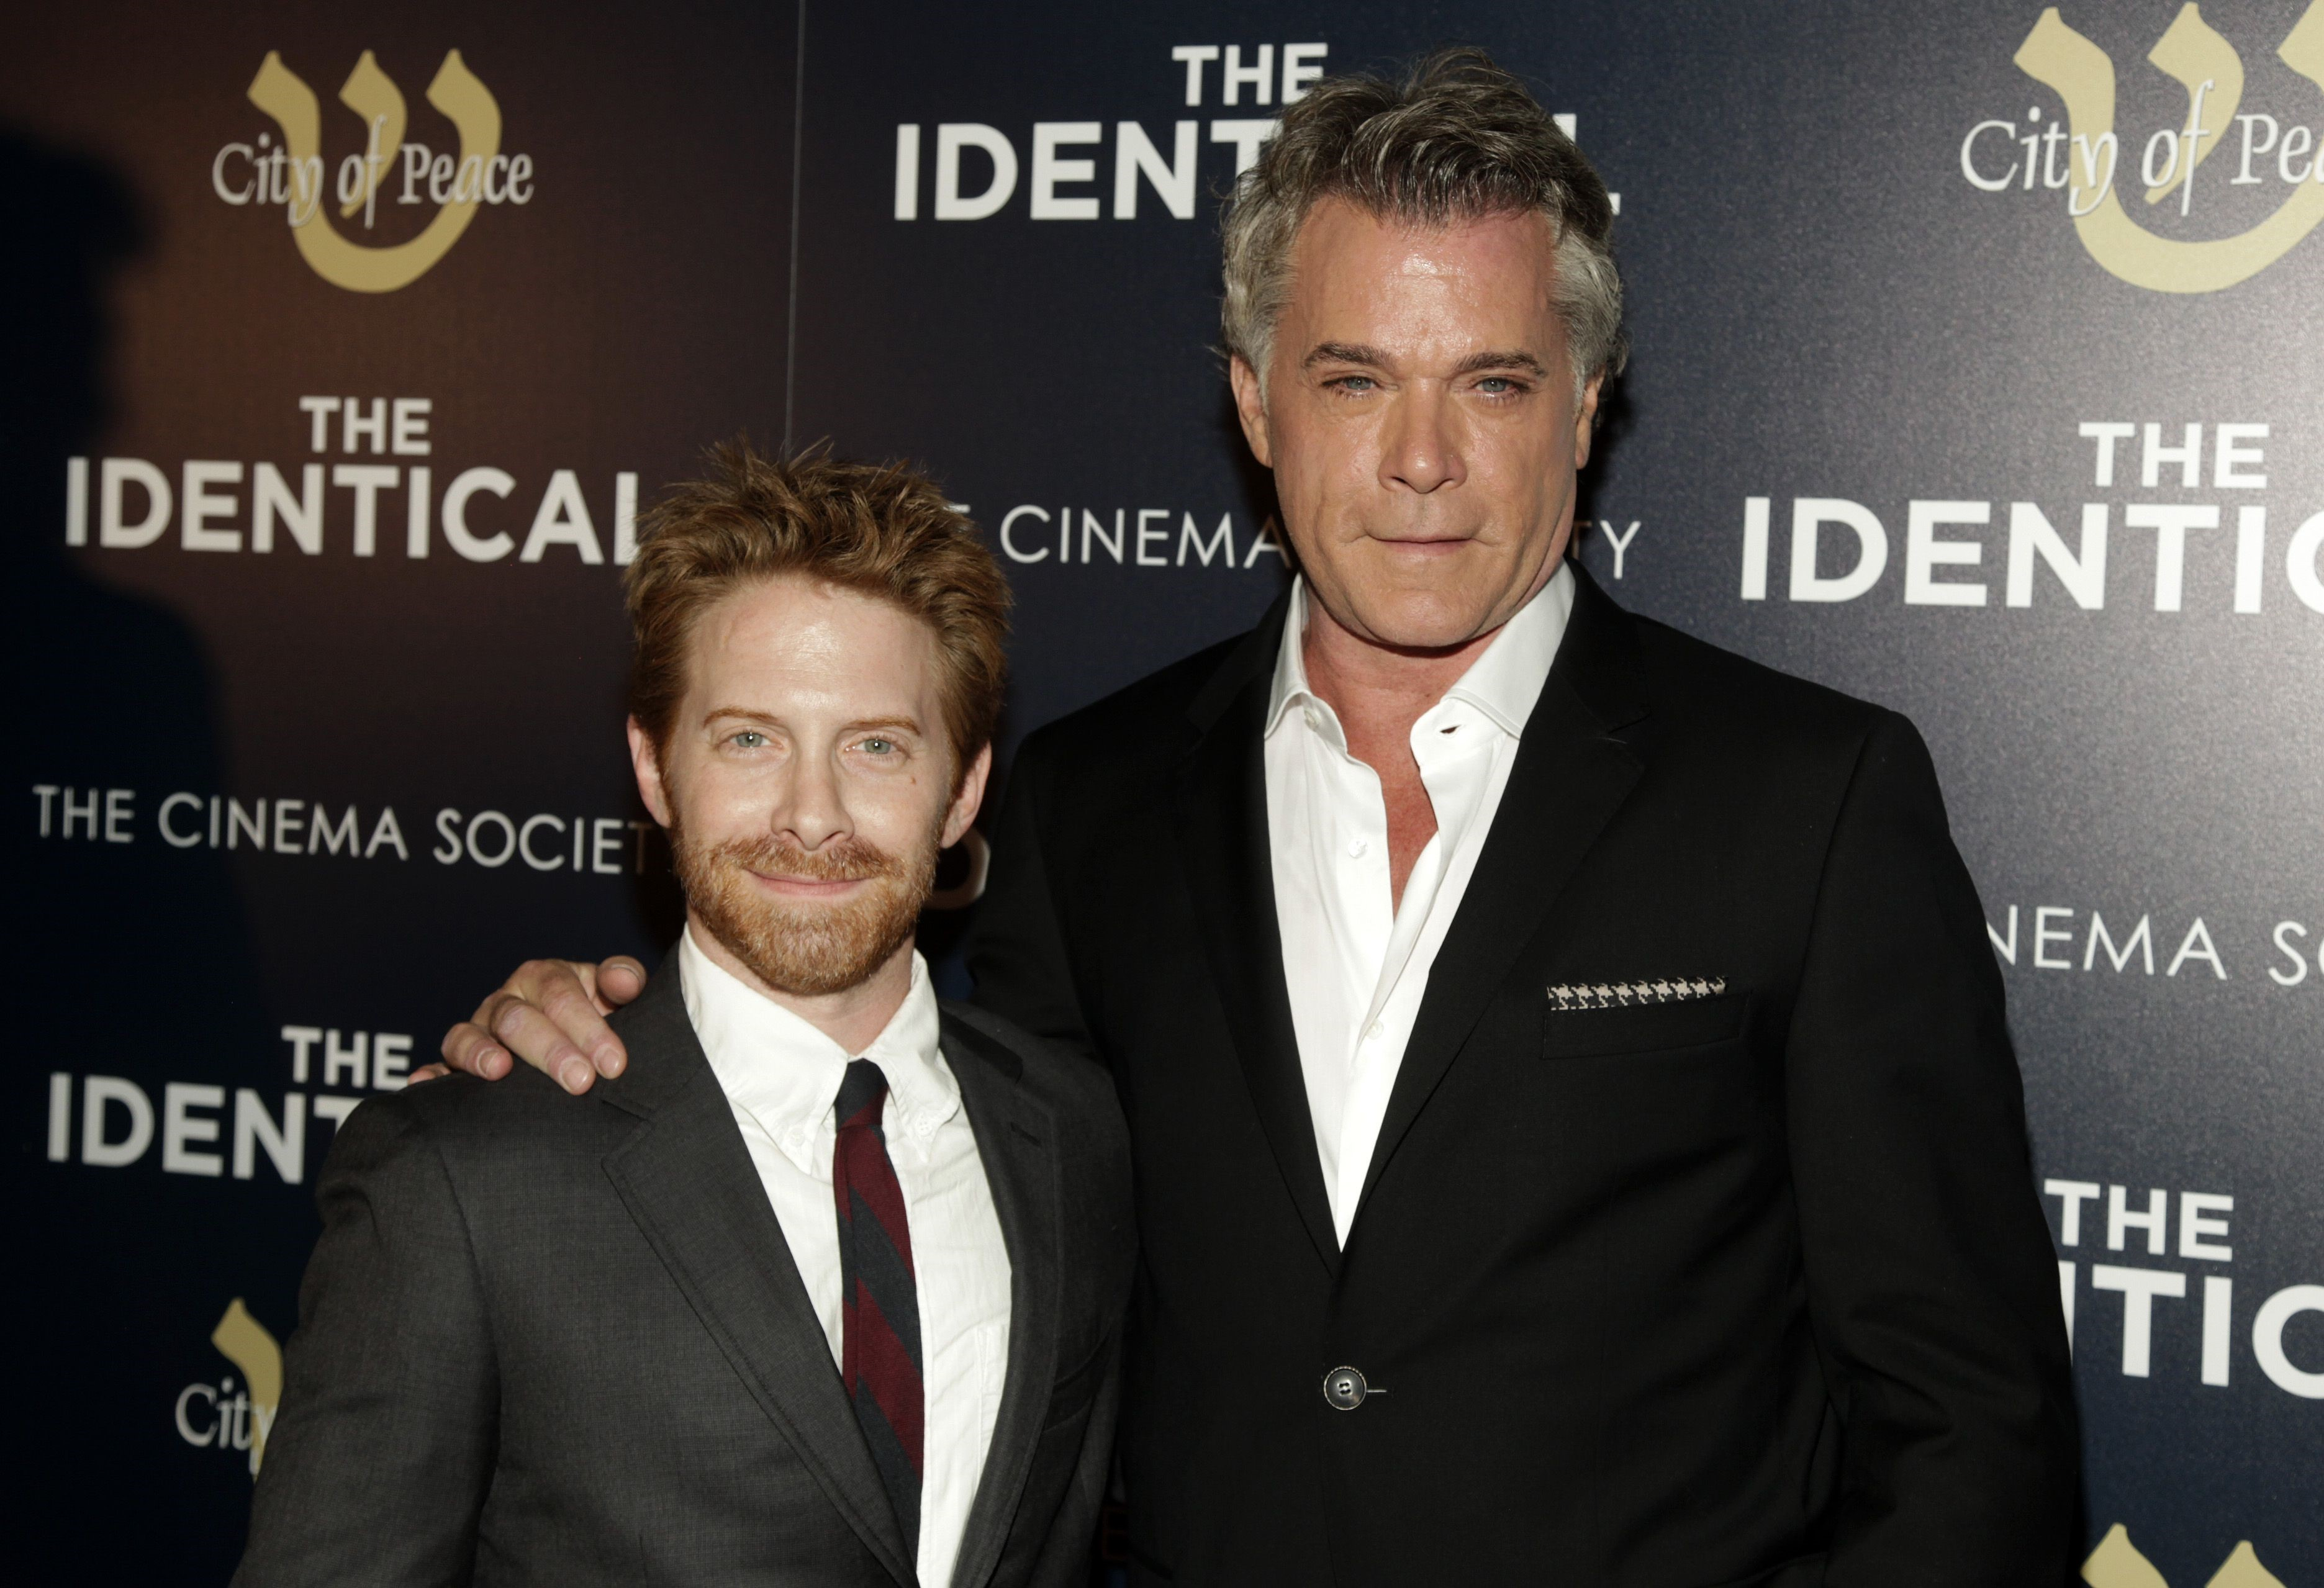 Seth Green at The Identical premiere in NYC September 03, 2014